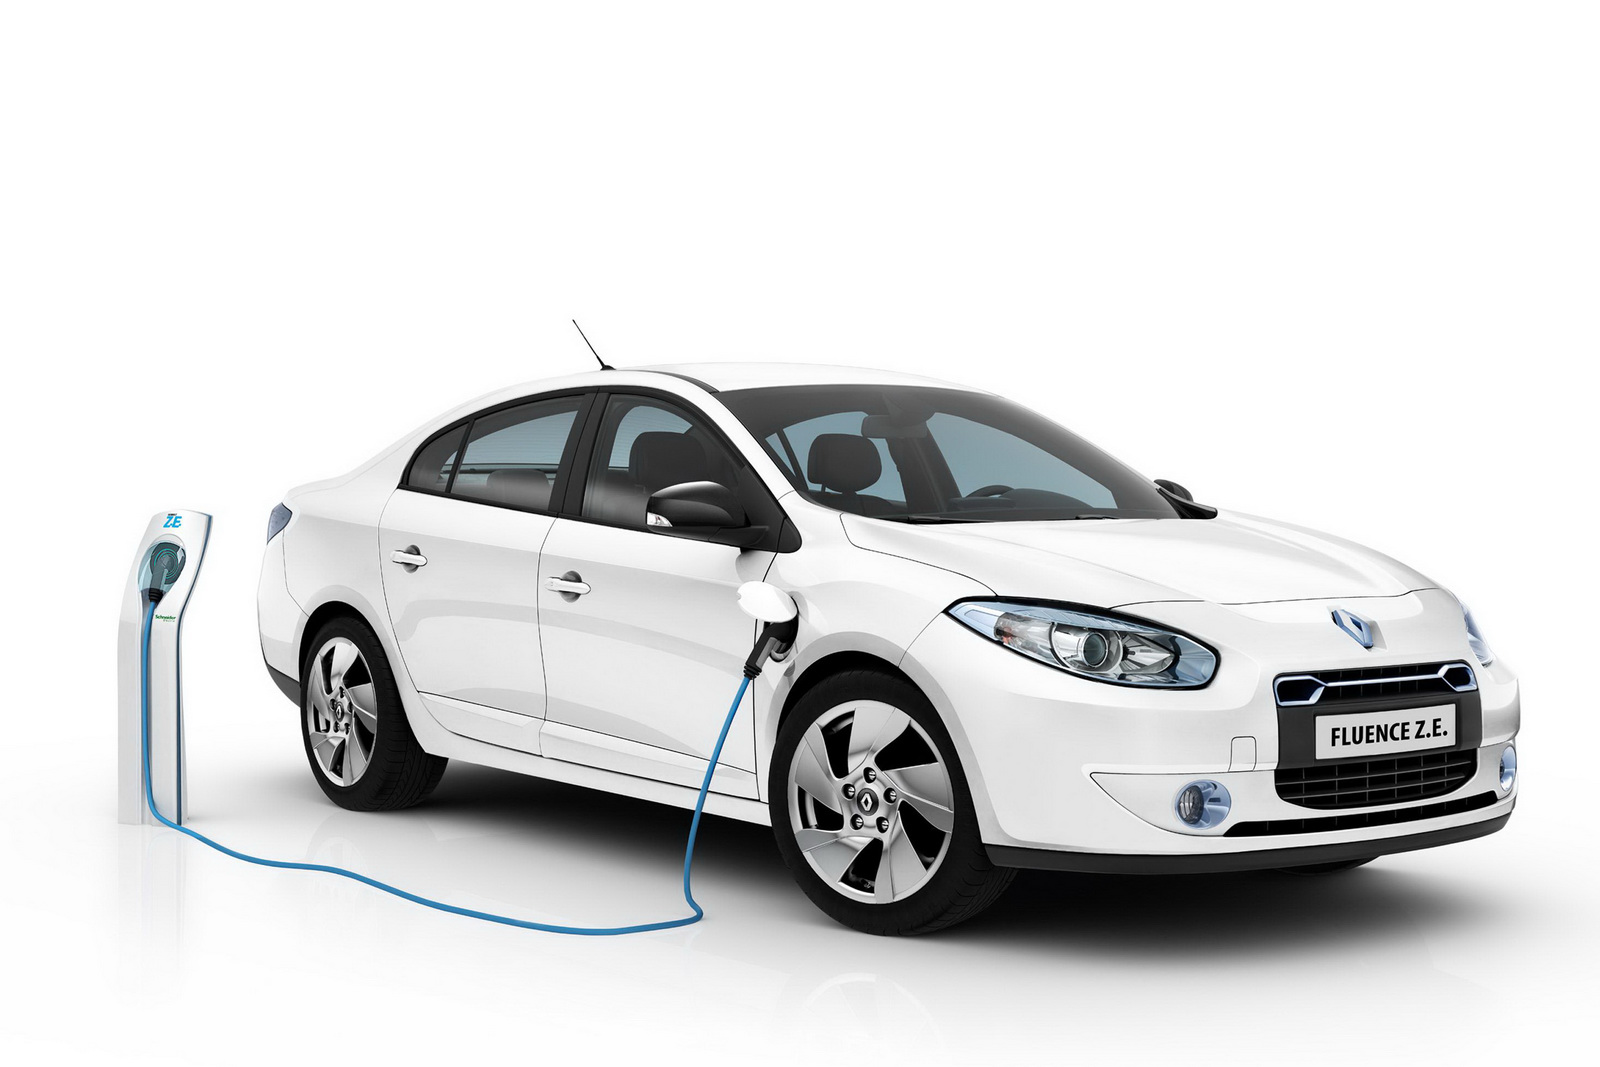 Renault Fluence ZE 4 Fluence Z.E. Saloon Car to be Launched by Renault with Revised Price Range